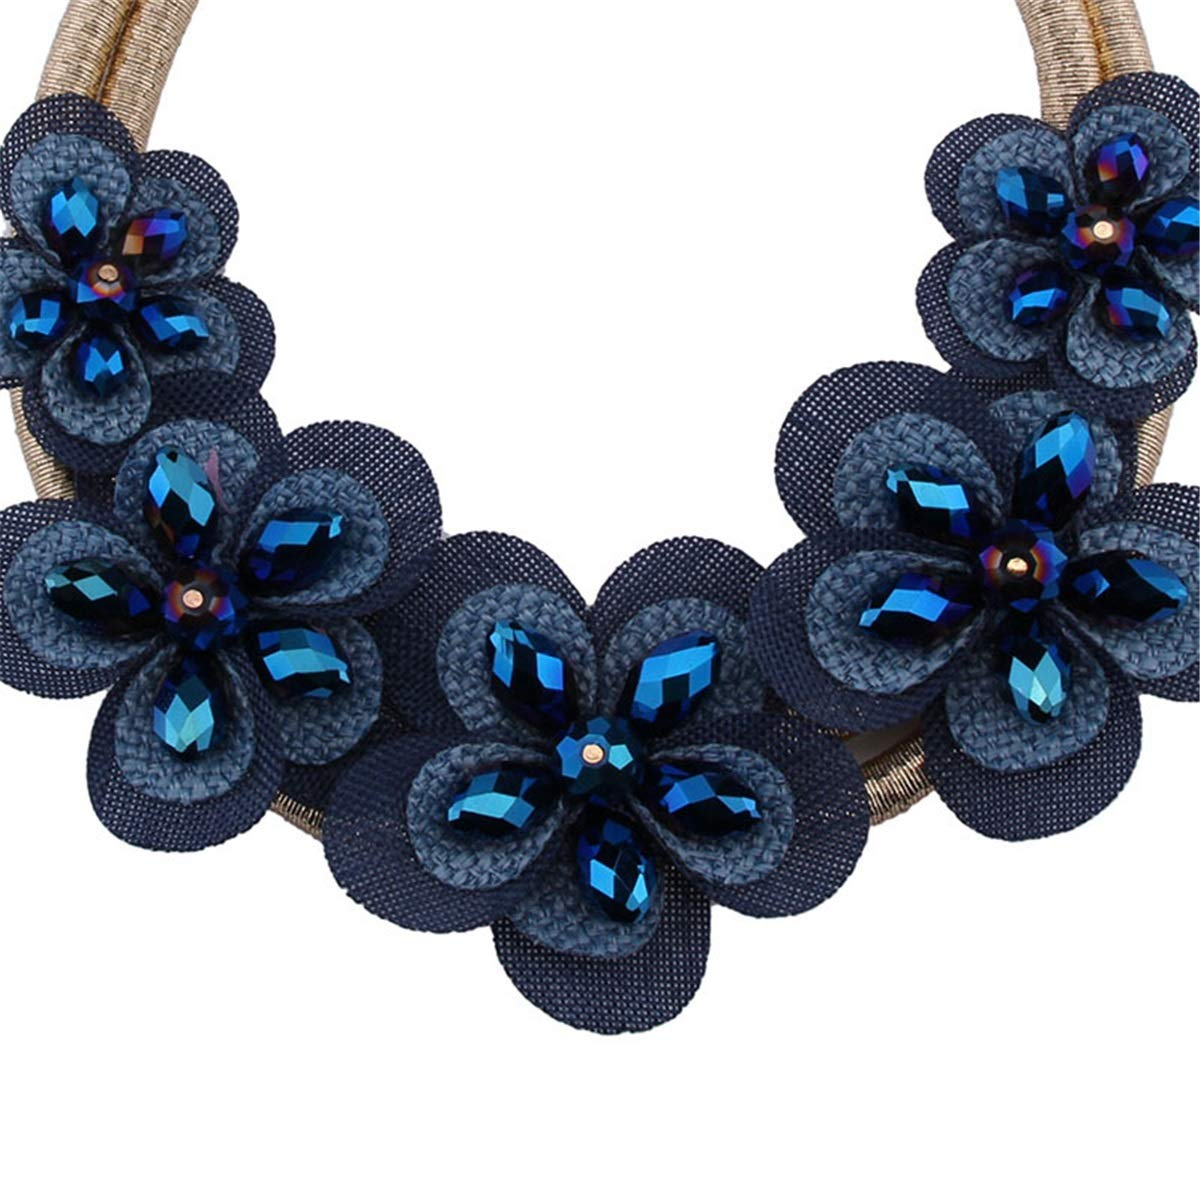 KTYX European and American Flower Necklace Multi-Layer Short Paragraph Wild 87cm Jewelry by KTYX (Image #2)